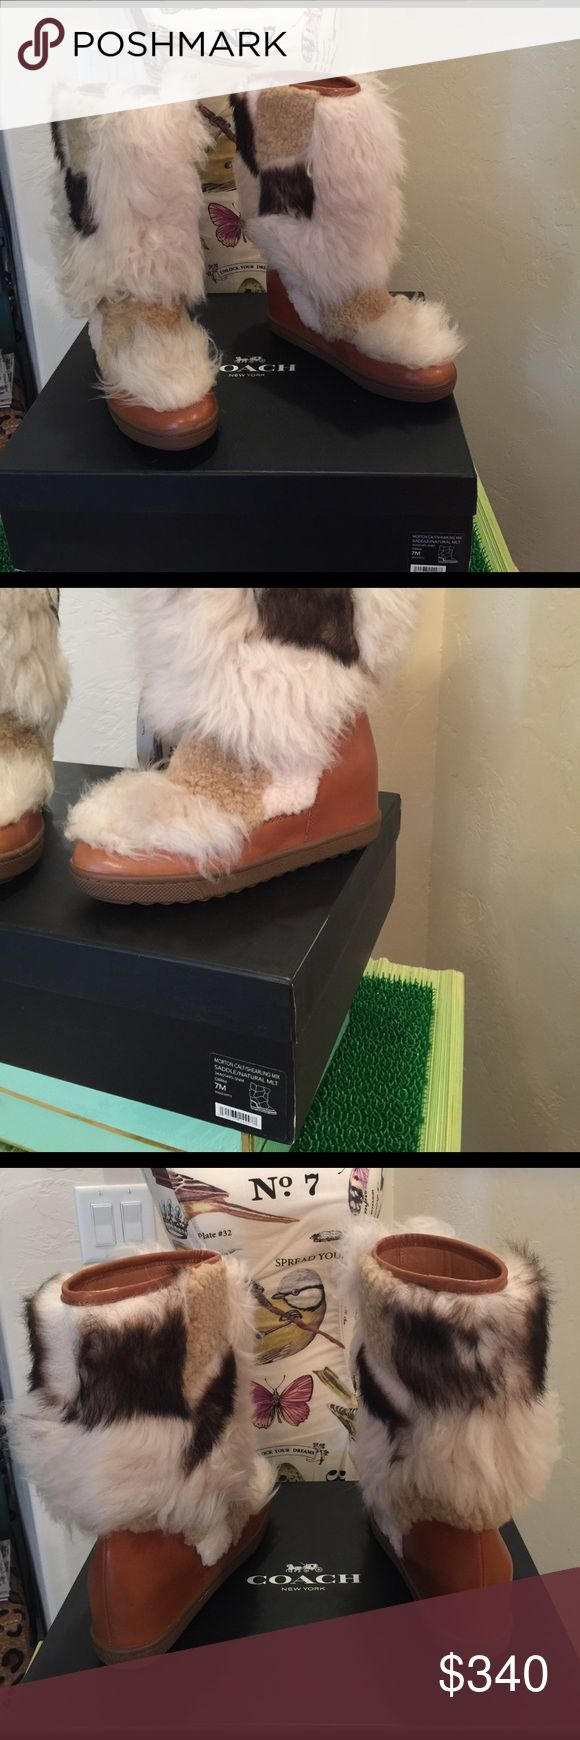 "Coach Sheep Skin Leather Boots Coach ""Morton"" Sheepskin and Tan Leather Boots, new Never Worn, statement piece, 12"" high, 2"" wedge, calf 12 1/2"" , comes with Coach box Coach Shoes Winter & Rain Boots"